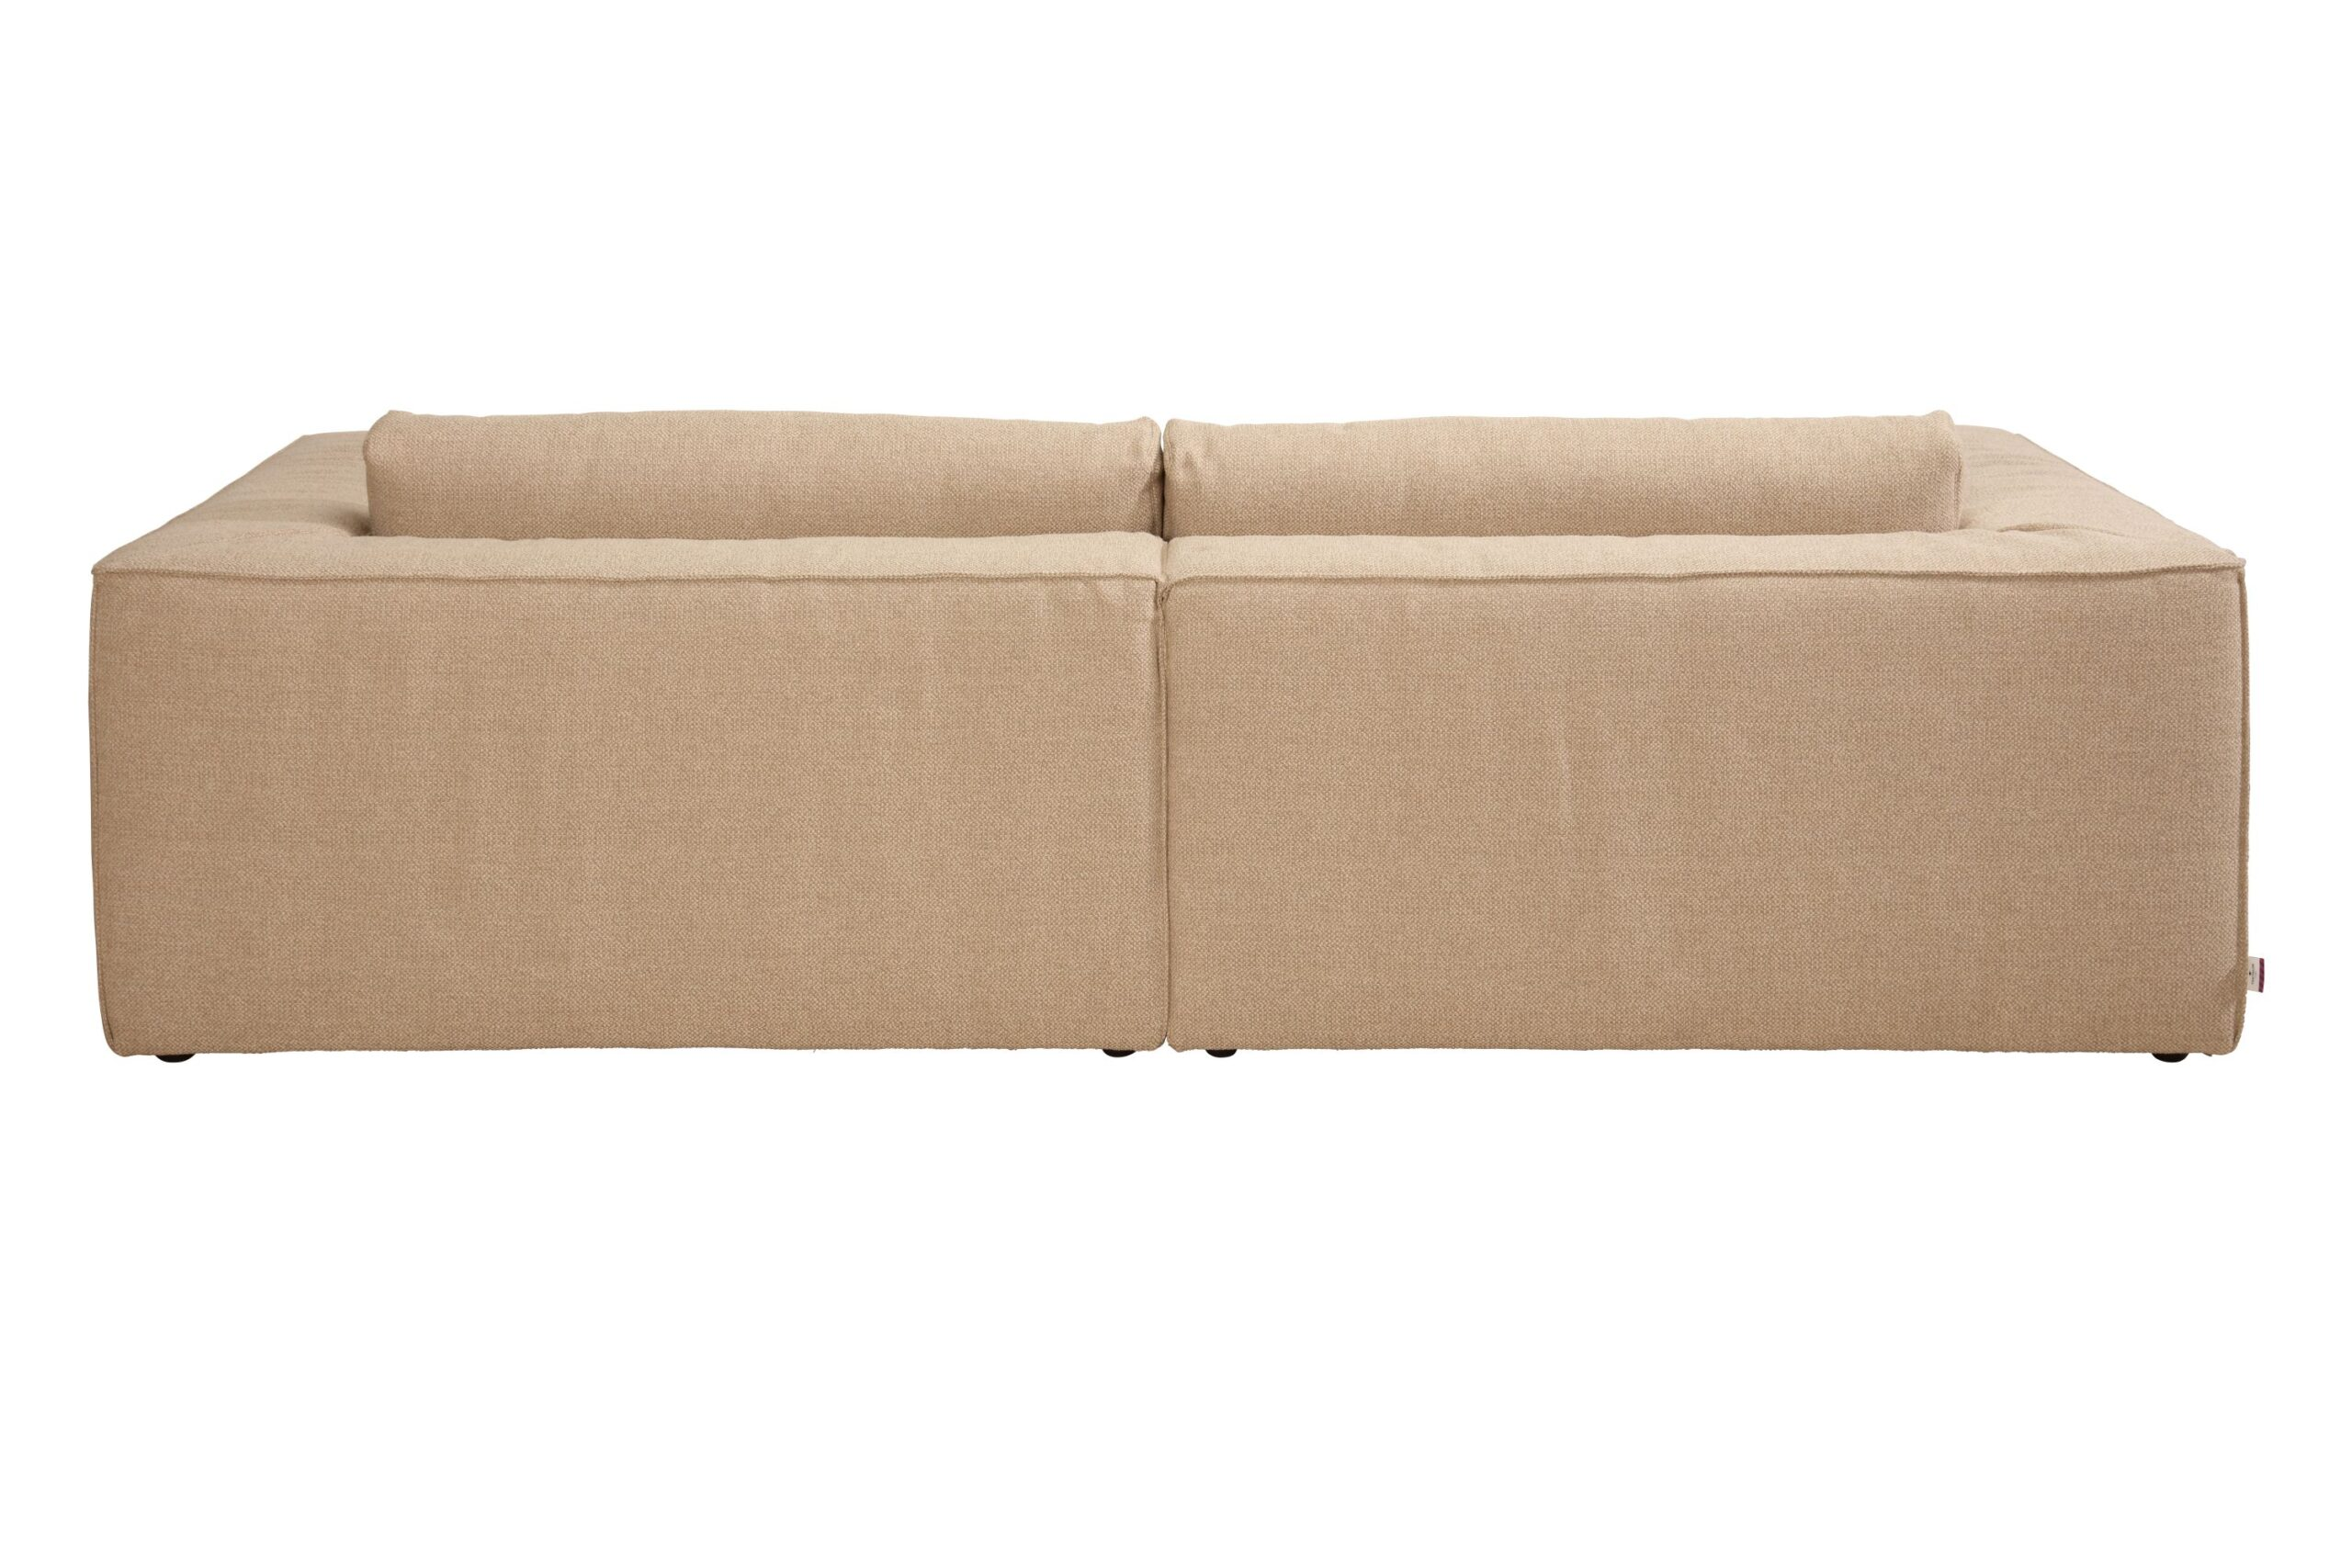 Full Size of Tom Tailor Sofa Heaven Chic Nordic Style Colors Pure Big Cube Elements Xl Couch 2 Sitzer Einzelsofas Polstermbel Mbel Togo Landhausstil Walter Knoll Kunstleder Sofa Tom Tailor Sofa